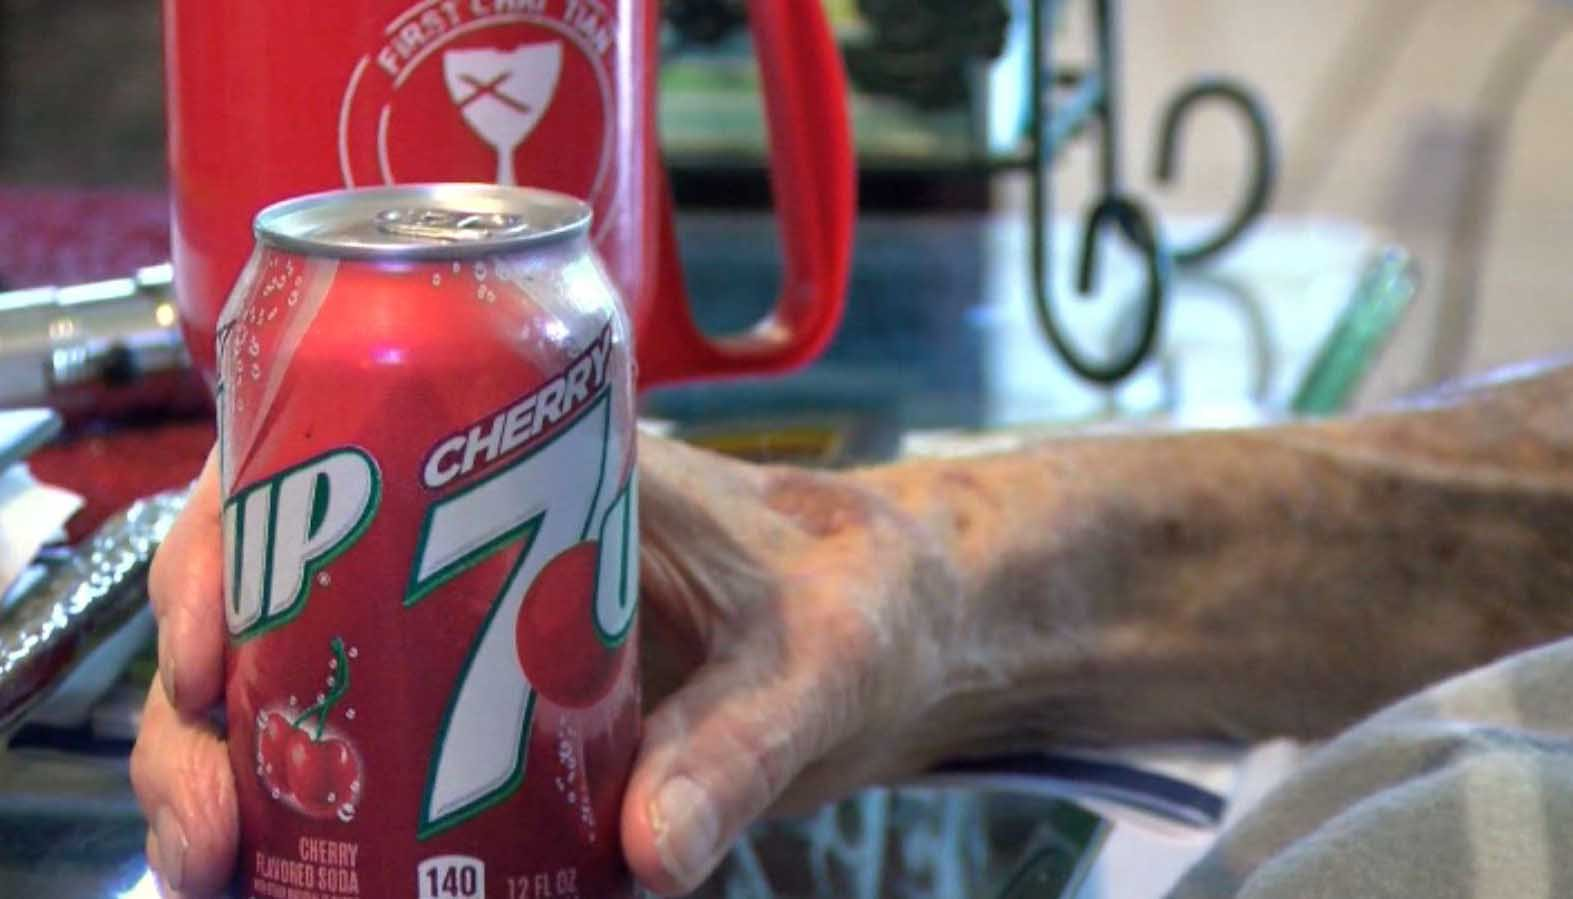 A dying man's seemingly simple request brought strangers together on a mission to get Cherry 7-Up in Abilene, TX. (Source: KTAB via CNN)